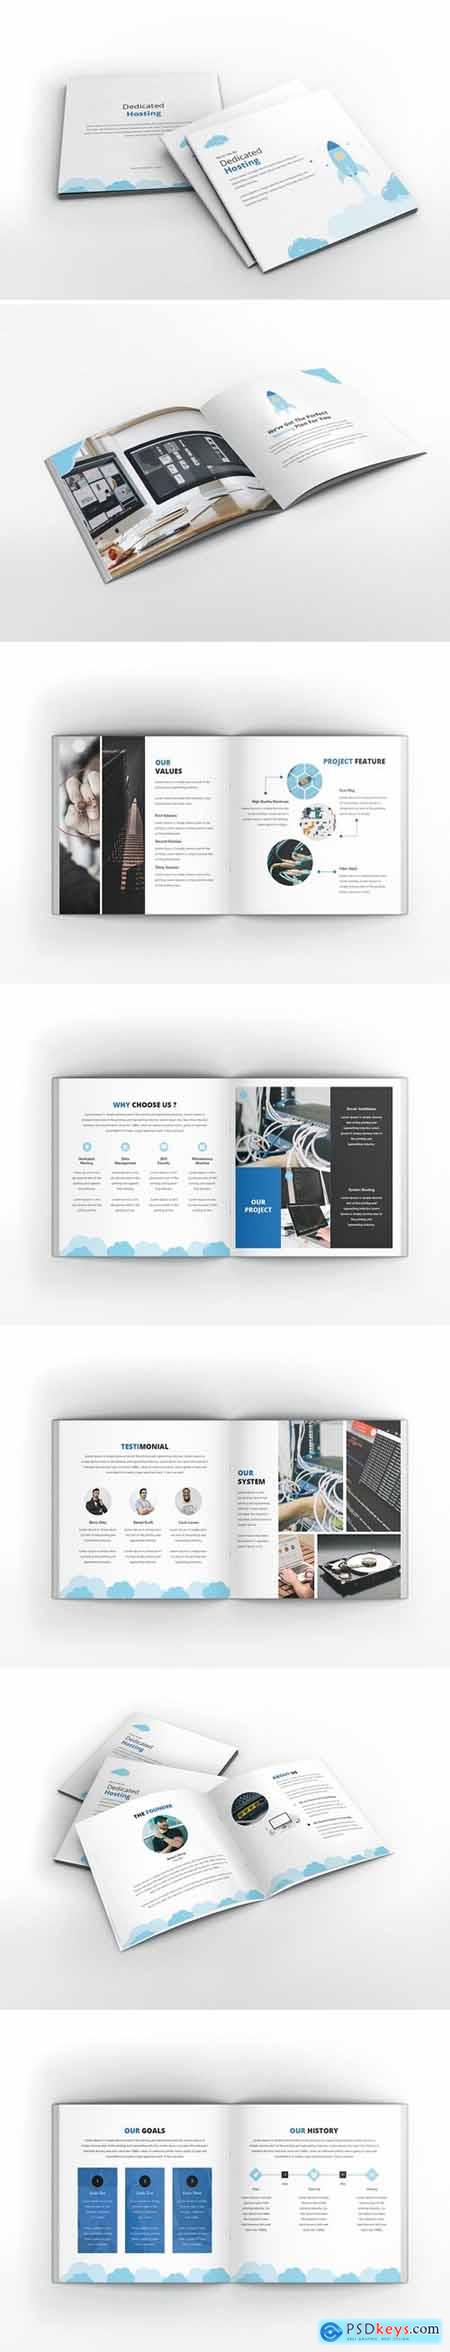 Hosting Square Brochure Template